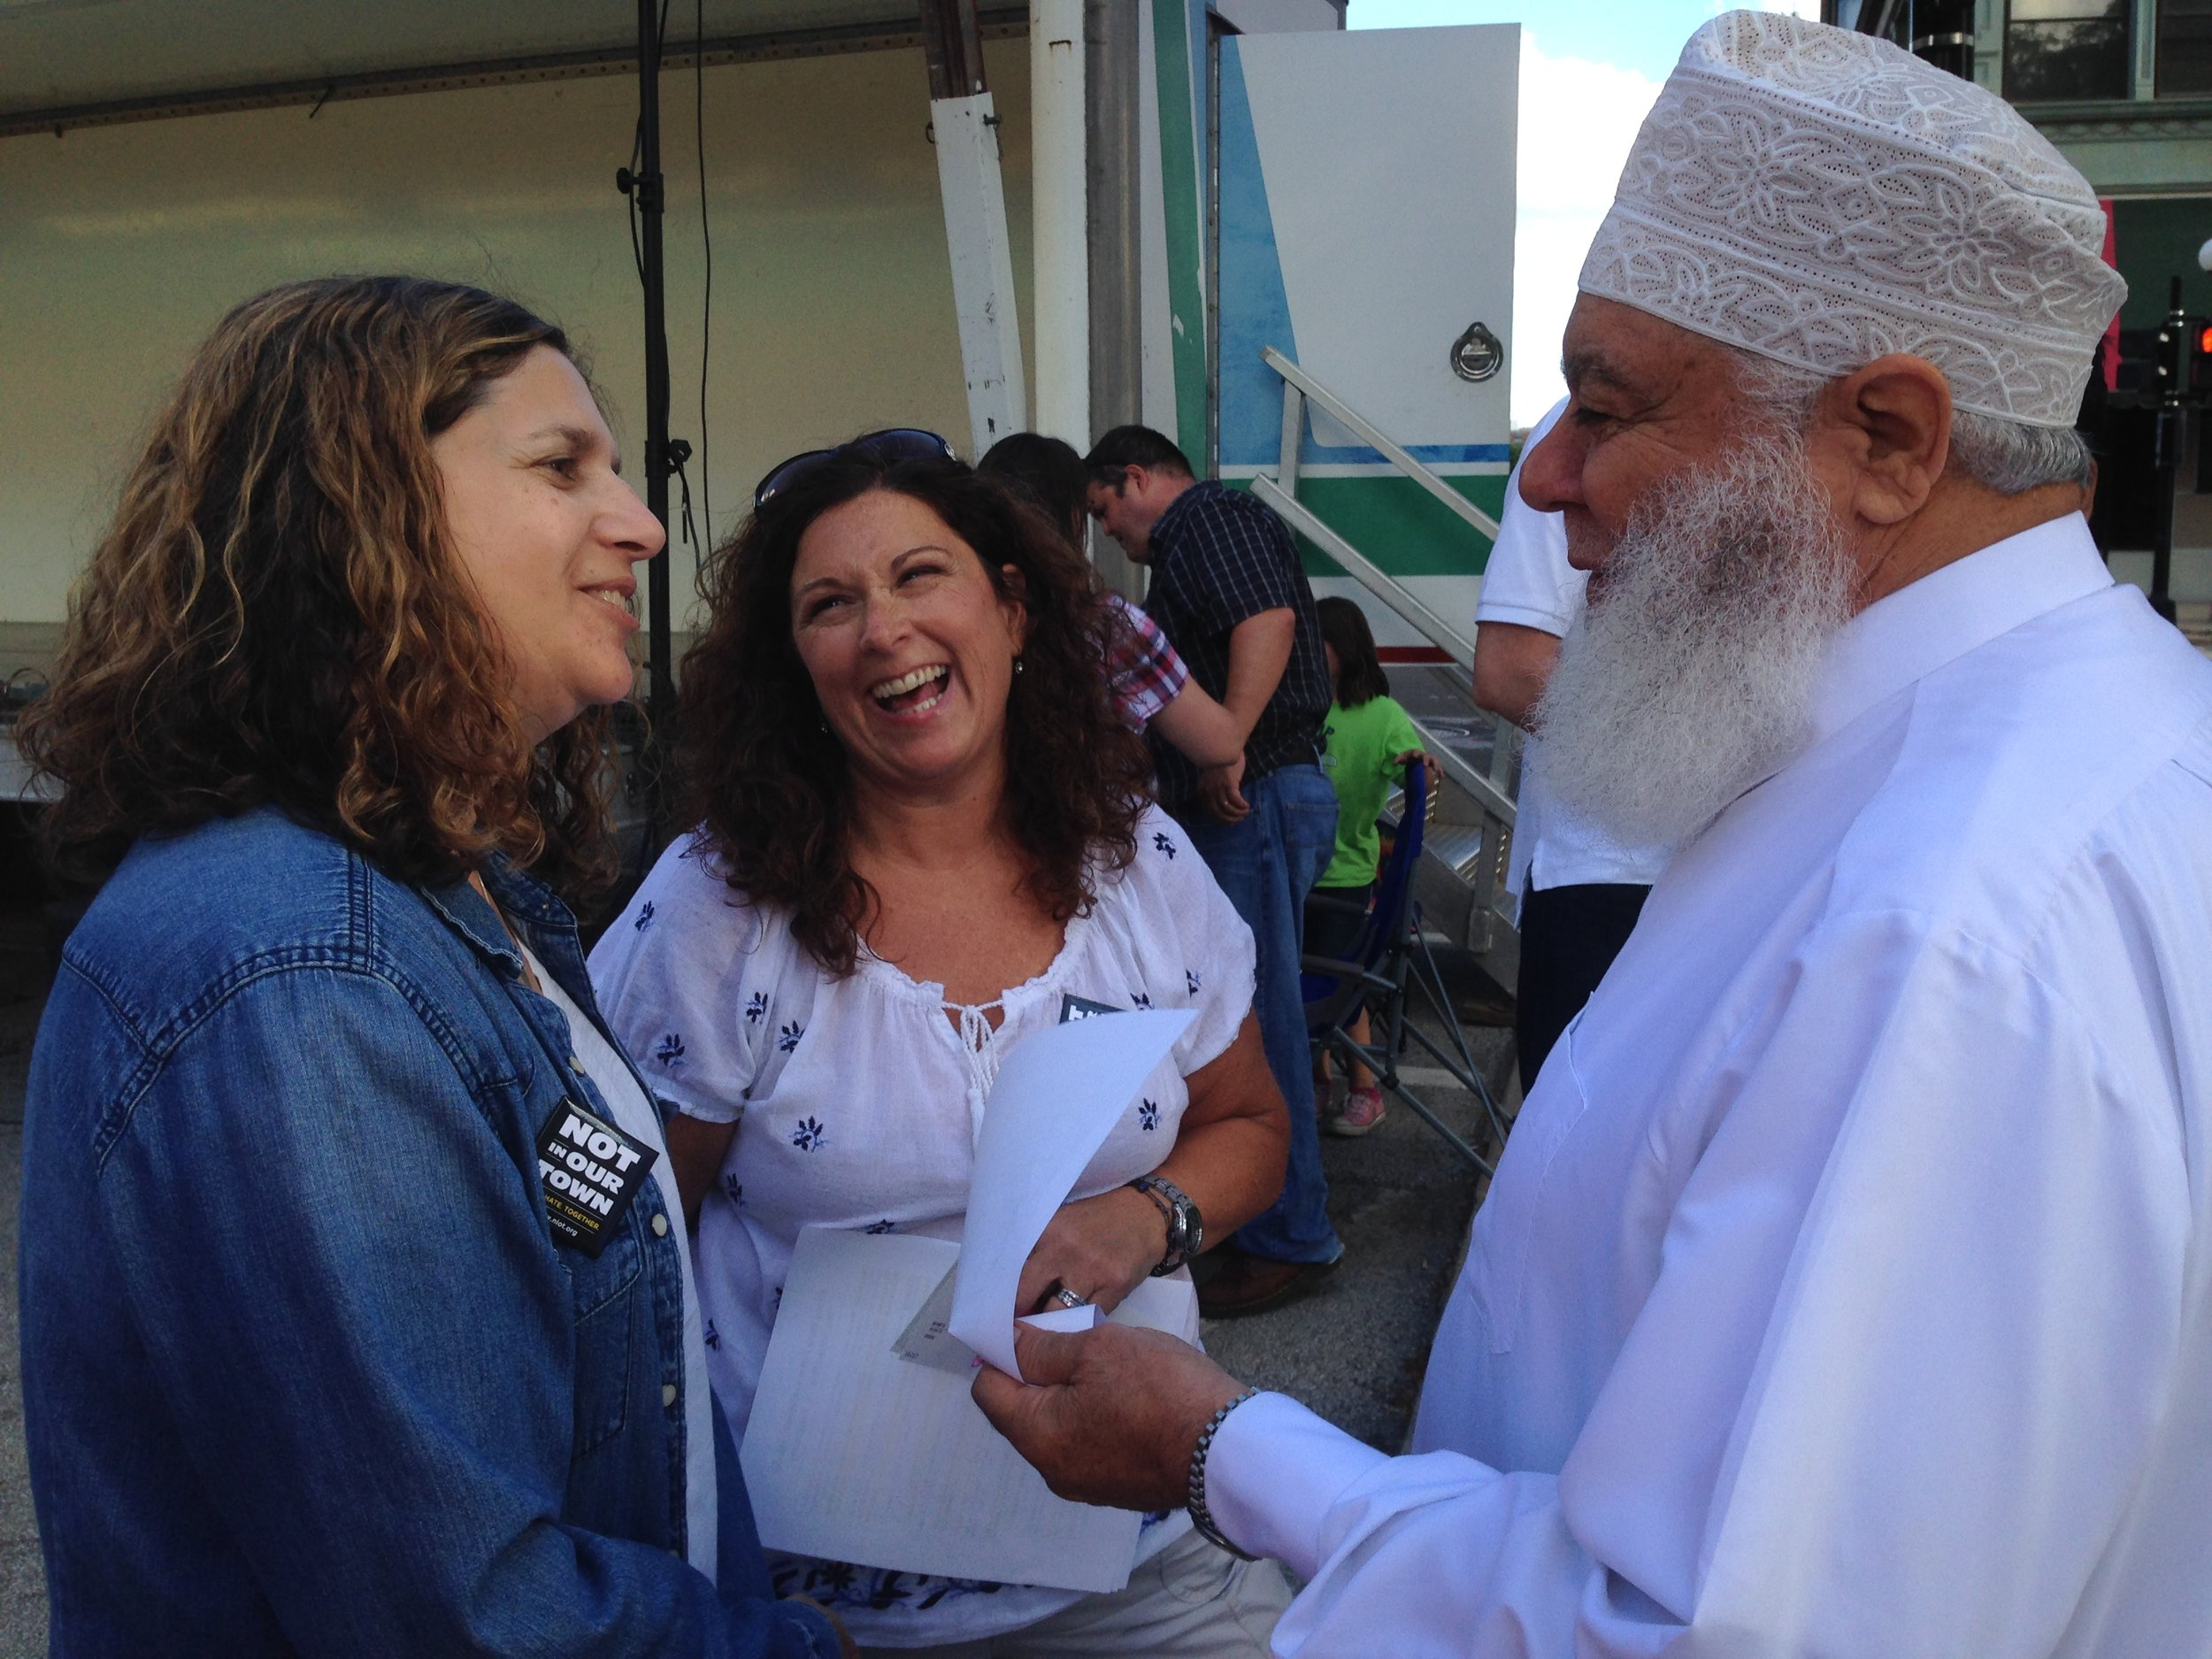 Shaikh Imam Abu-Emad Al-Talla chats with Rabbi Rebecca Dubowe, left, and former First Christian Church Associate Minister Kelley Becker during last summer's Not In Our Town: Bloomington-Normal 20th Anniversary.